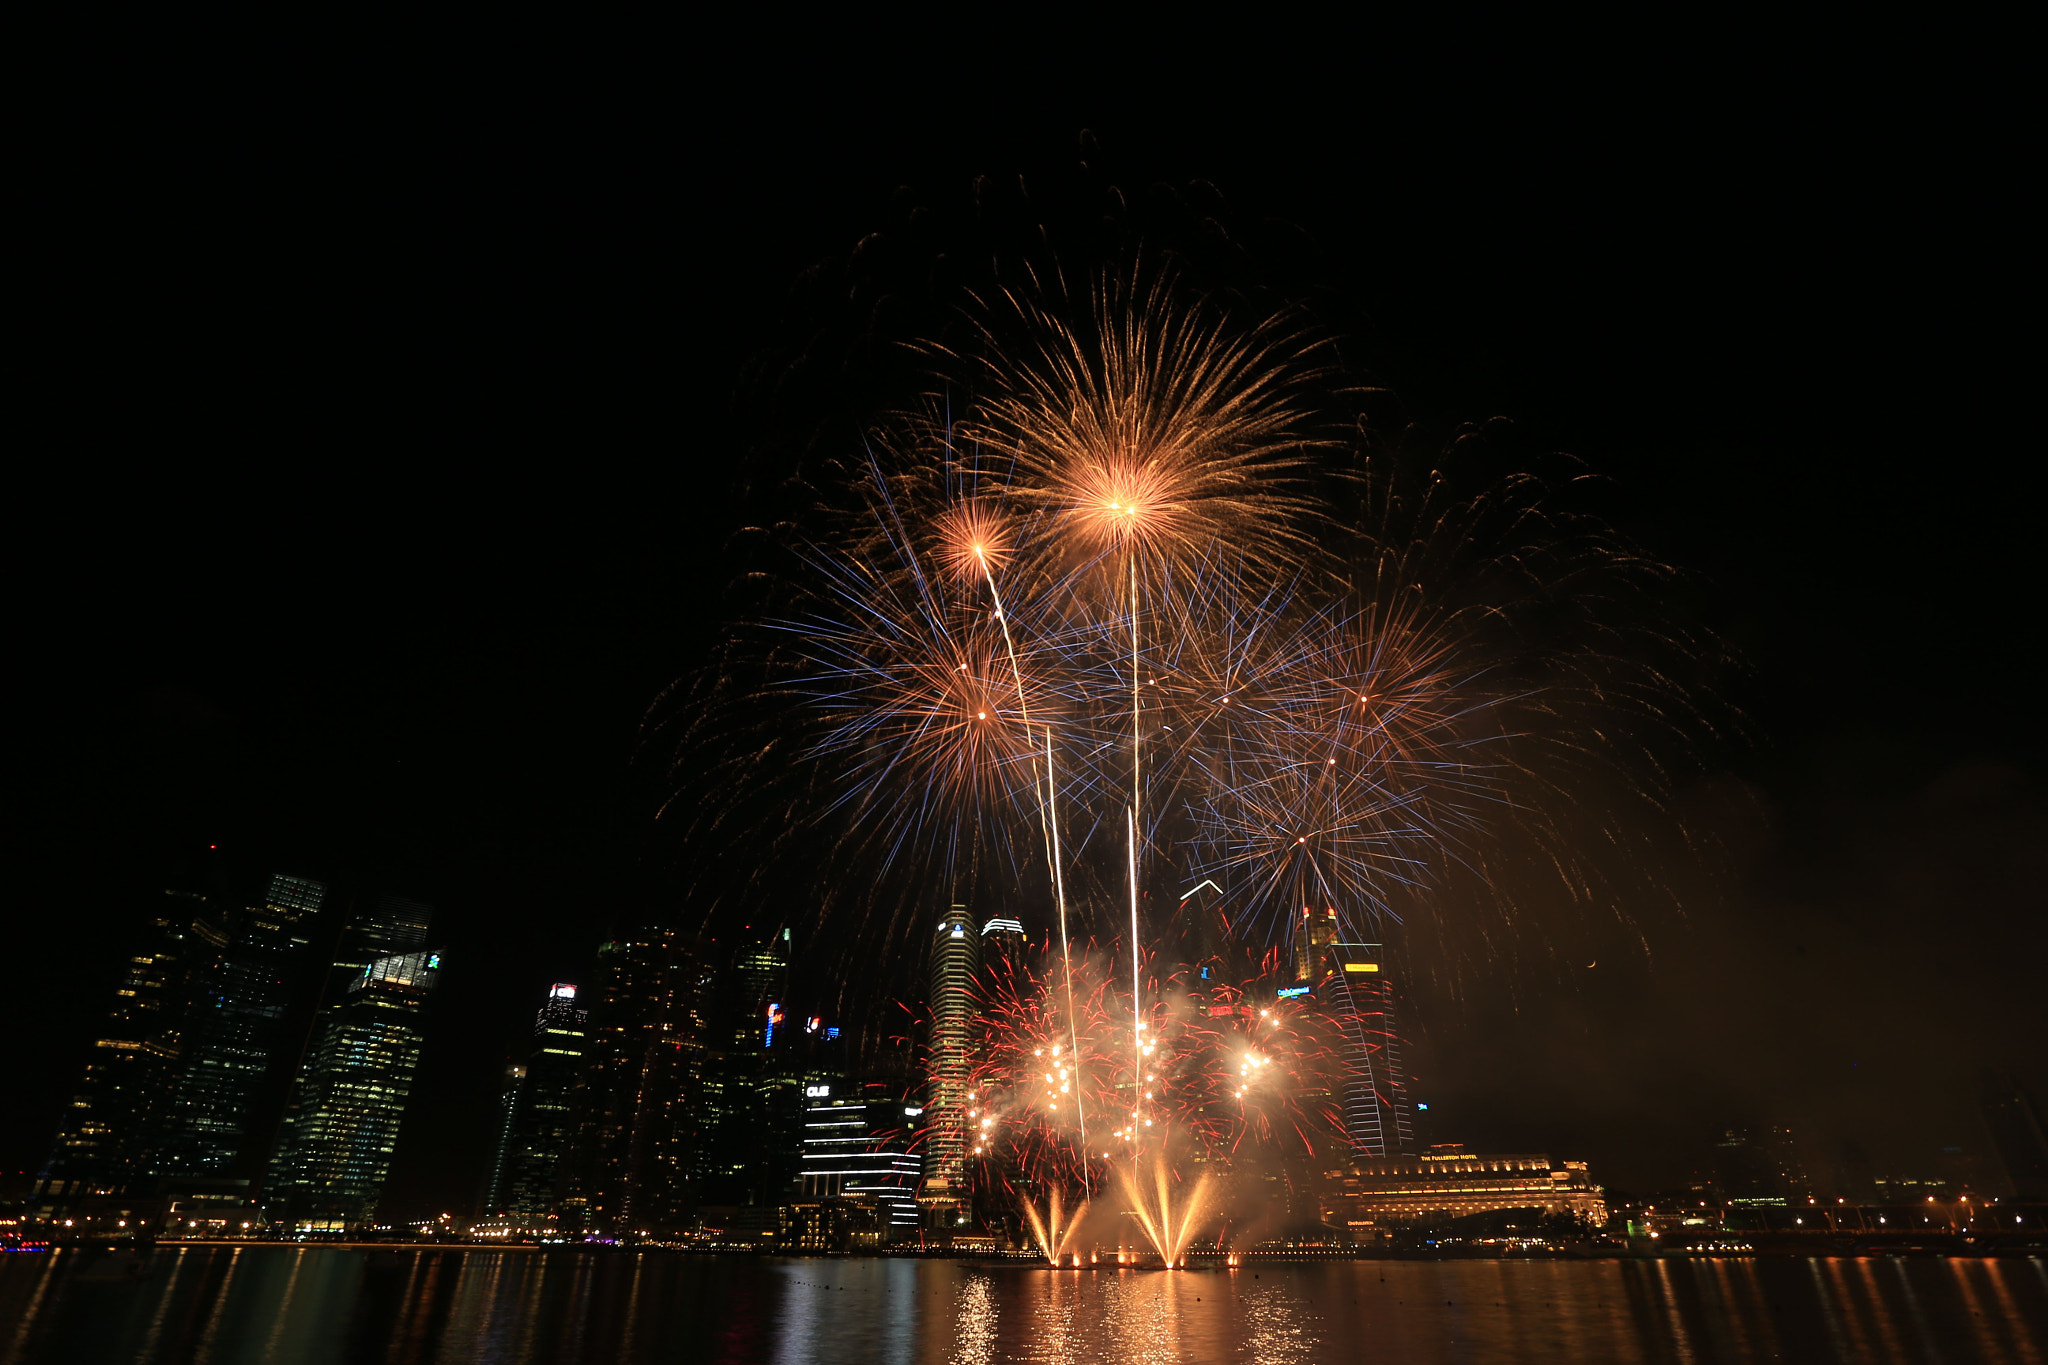 Photograph Fireworks at Marina Bay (from Marina Bay Sands) by GengHui Tan on 500px